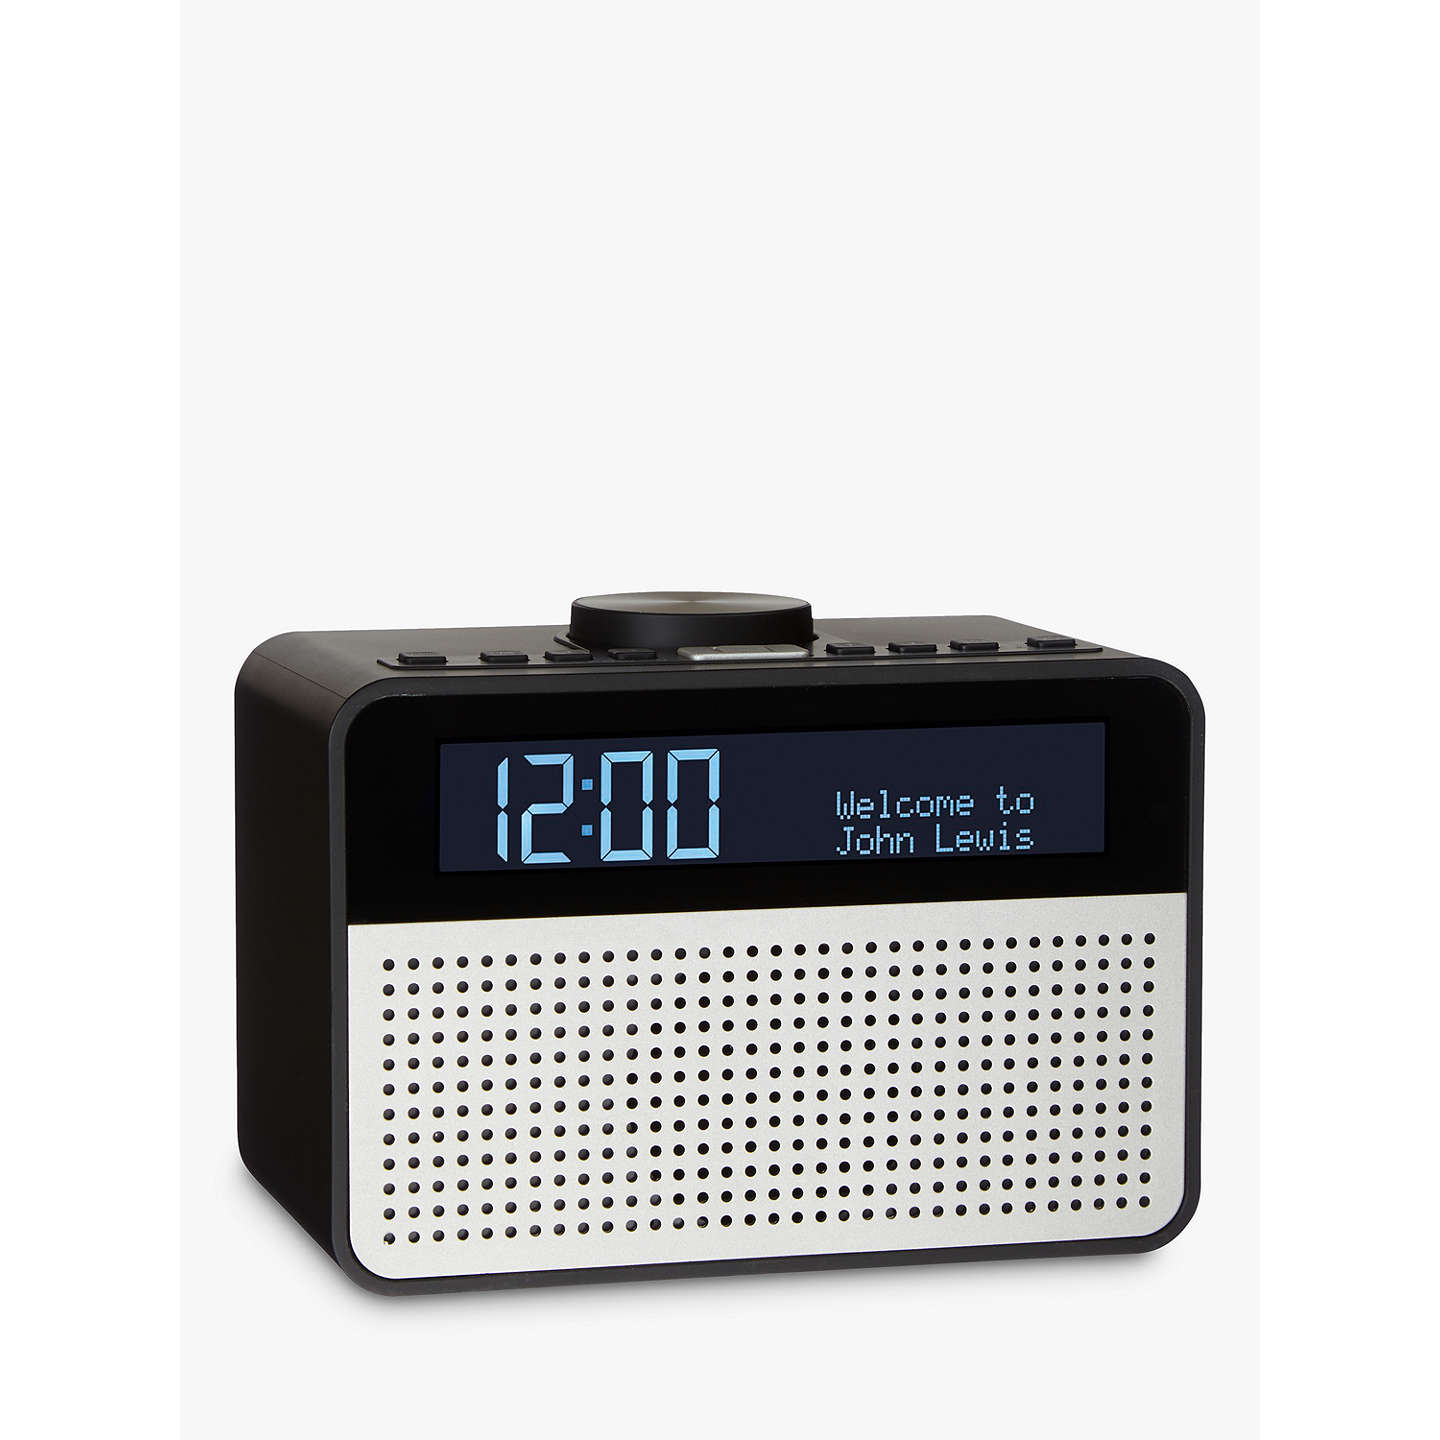 BuyJohn Lewis Astro DAB FM Digital Clock Radio With Alarm LCD Display Black